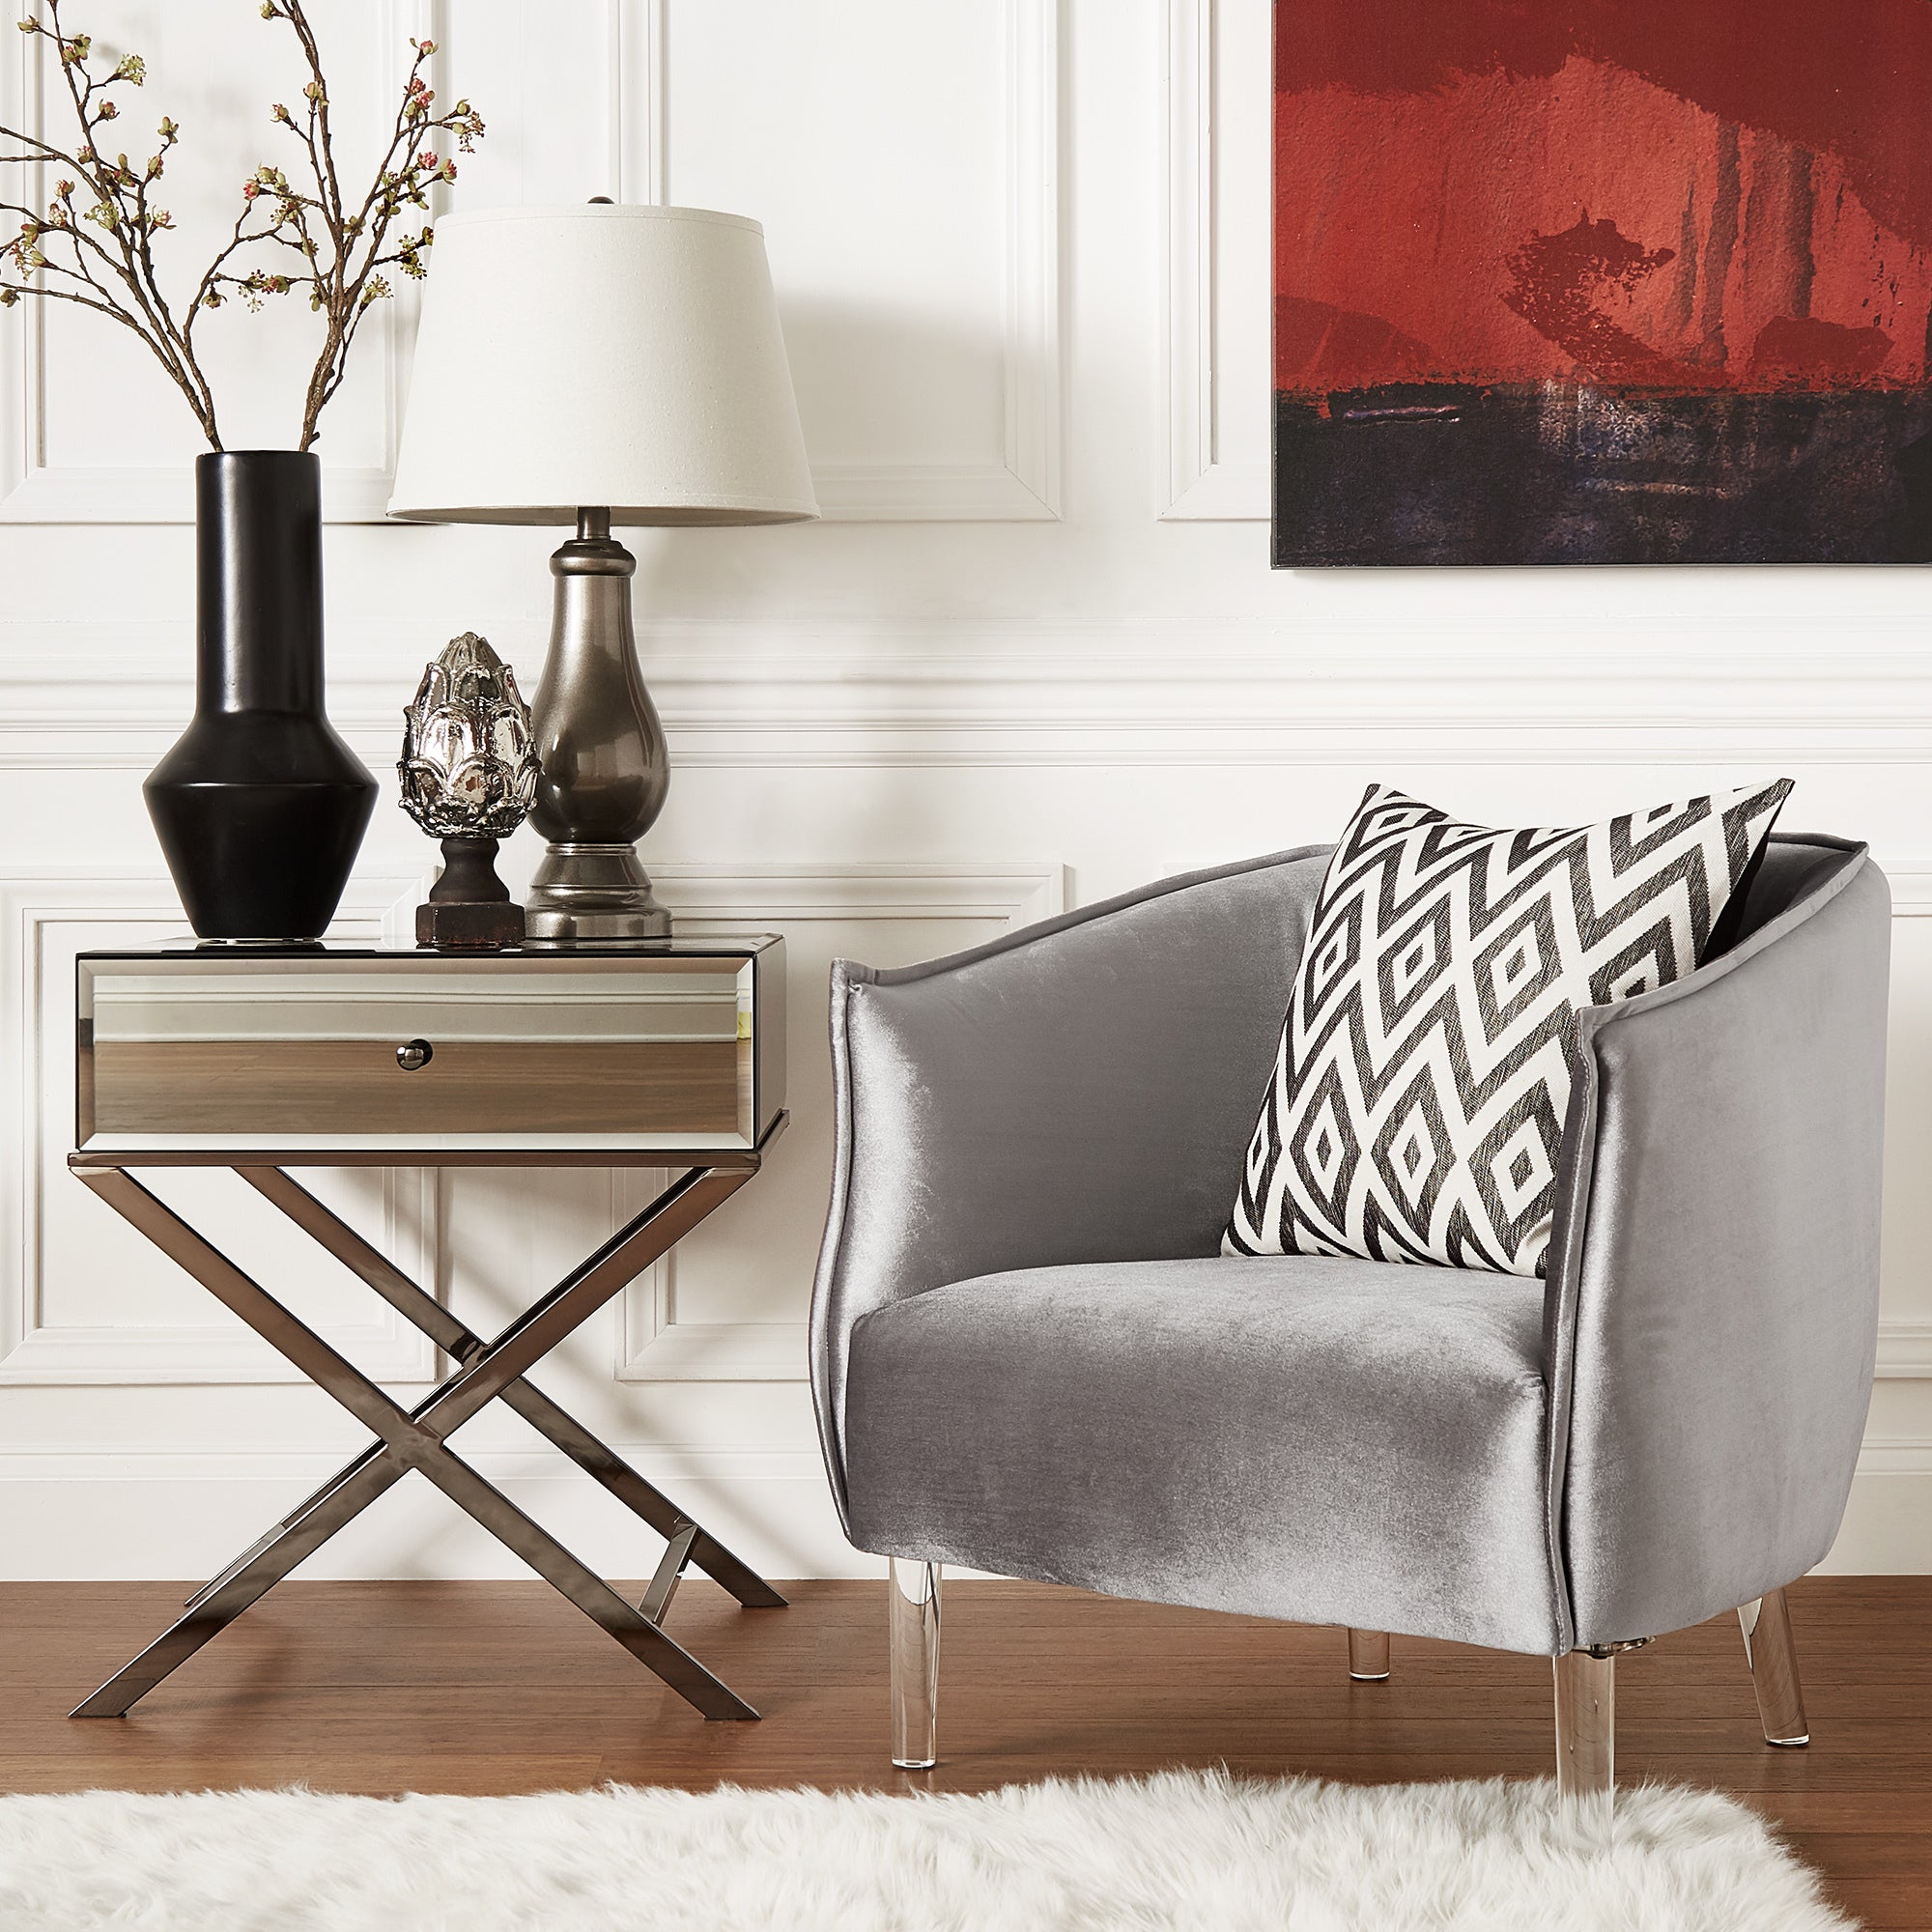 Vianne-Velvet-Curved-Back-Acrylic-Leg-Accent-Chair-